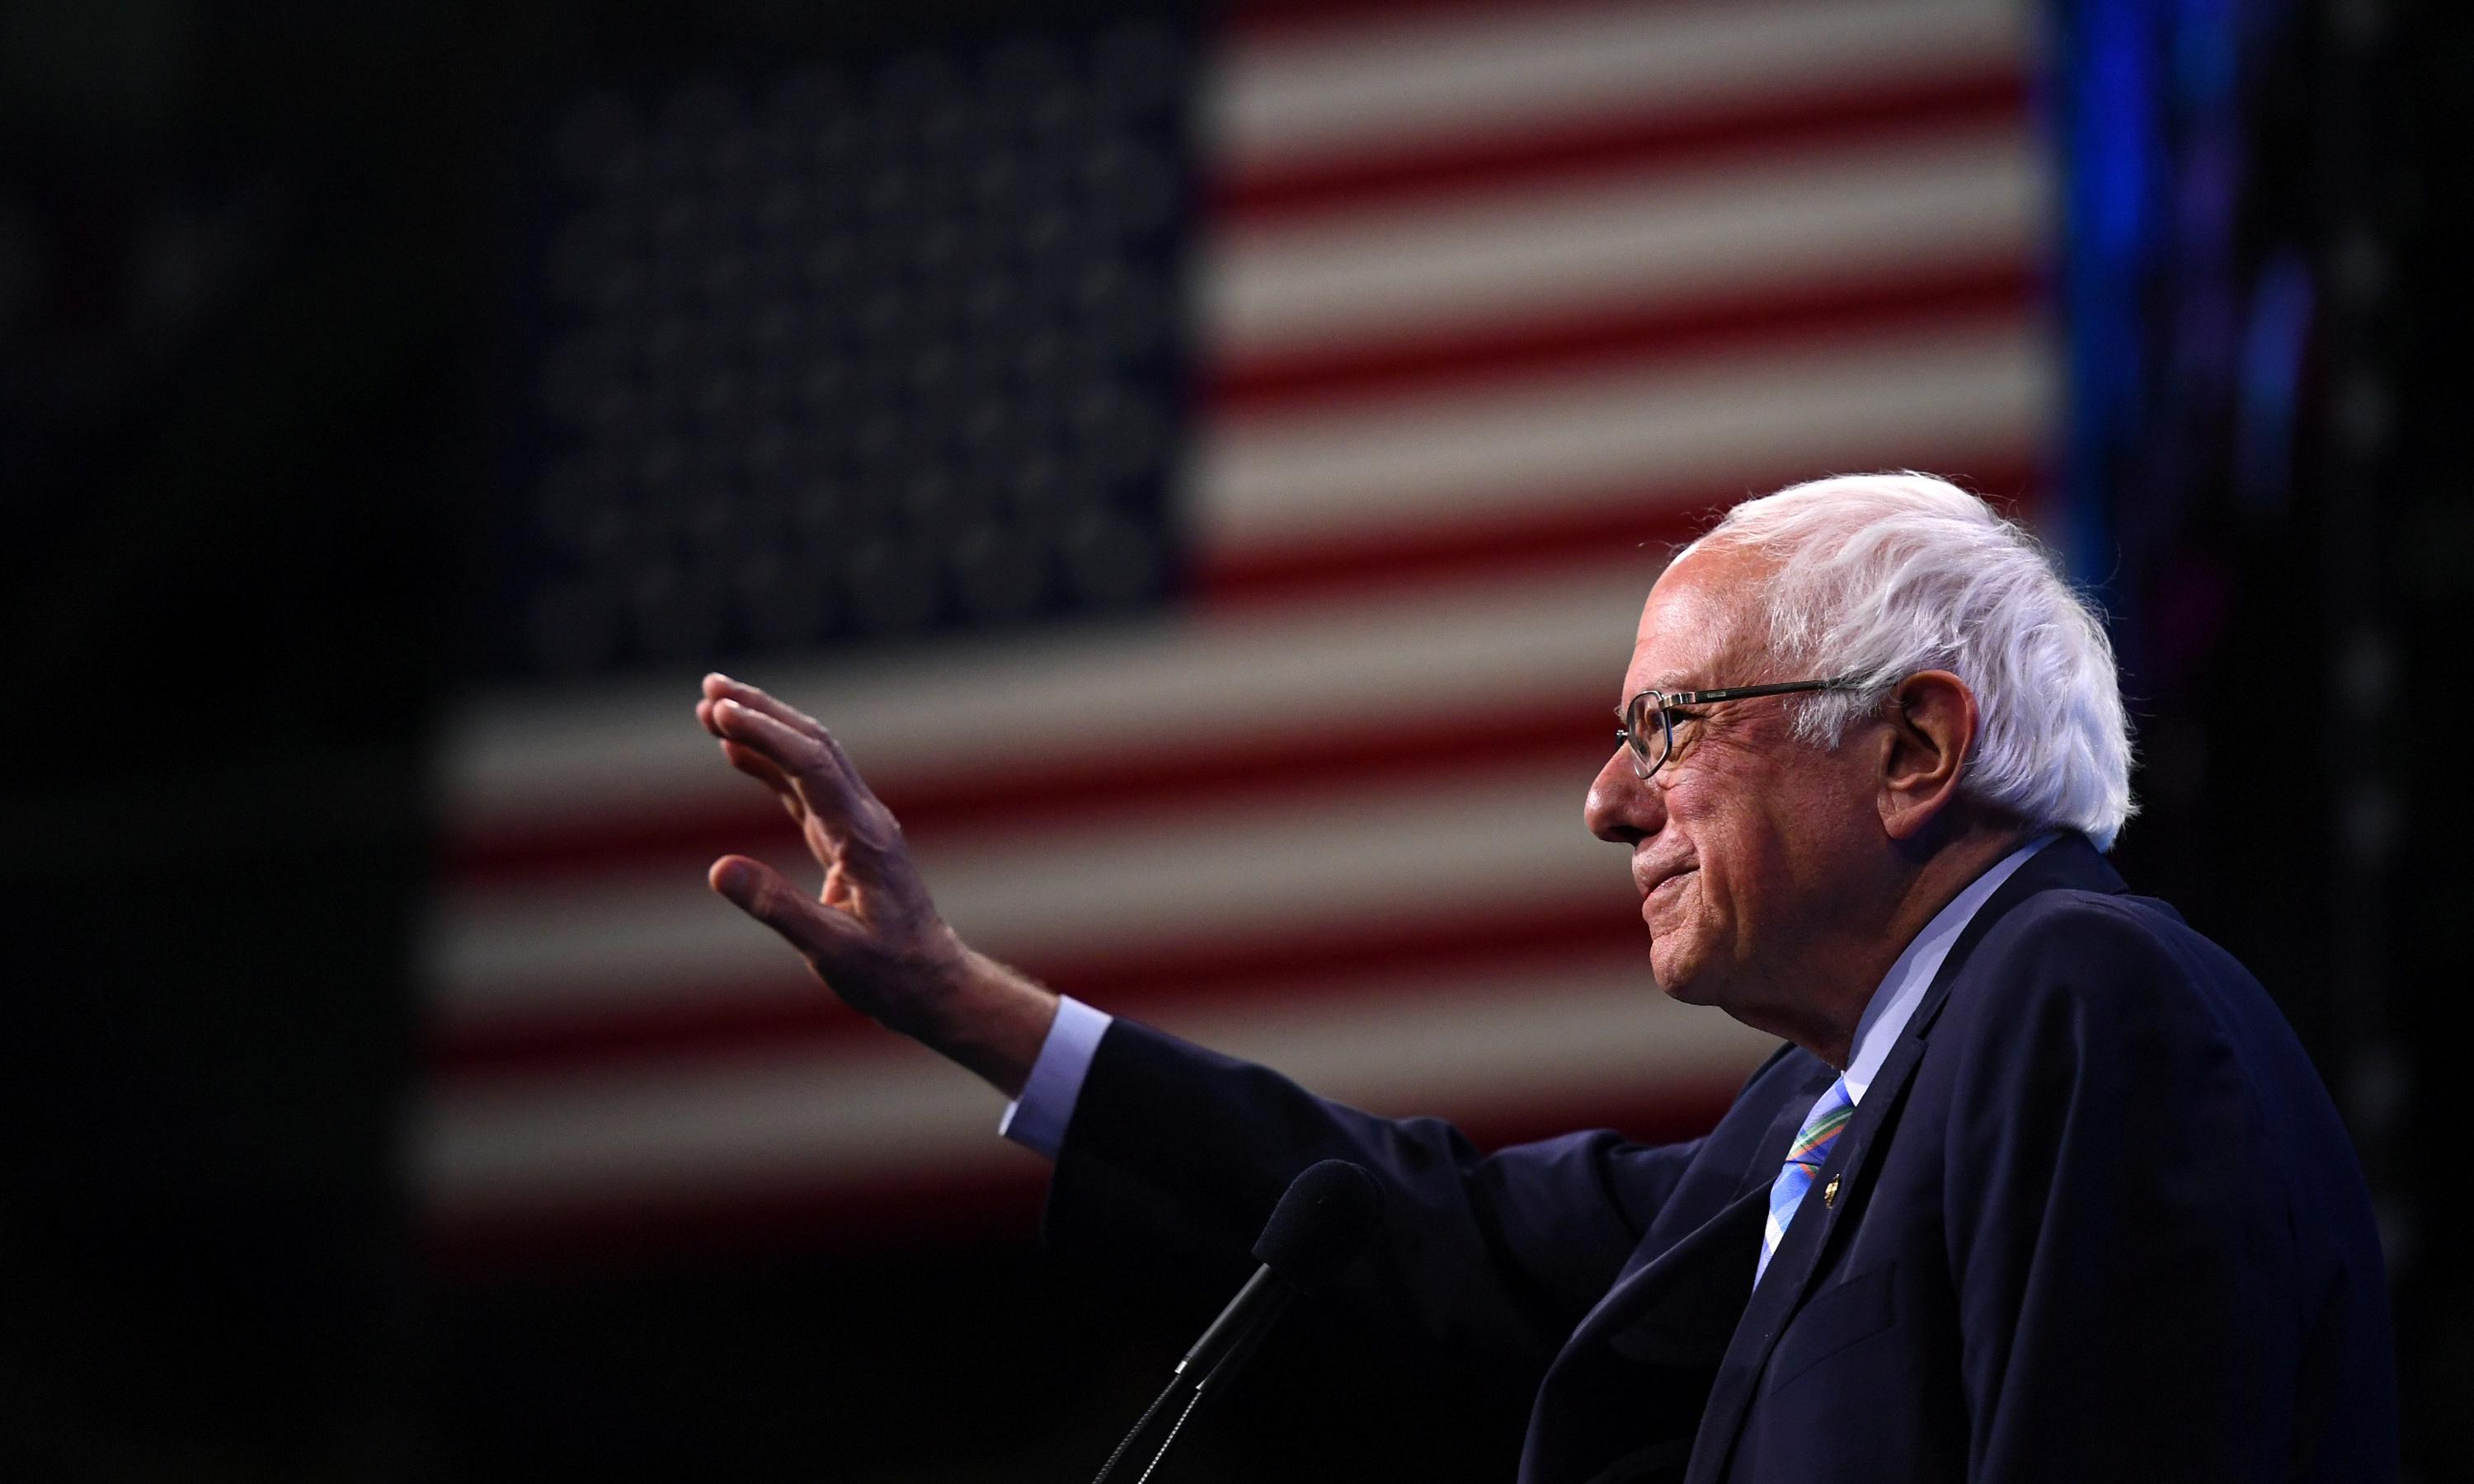 Bernie Sanders is right, it's time to redistribute economic power